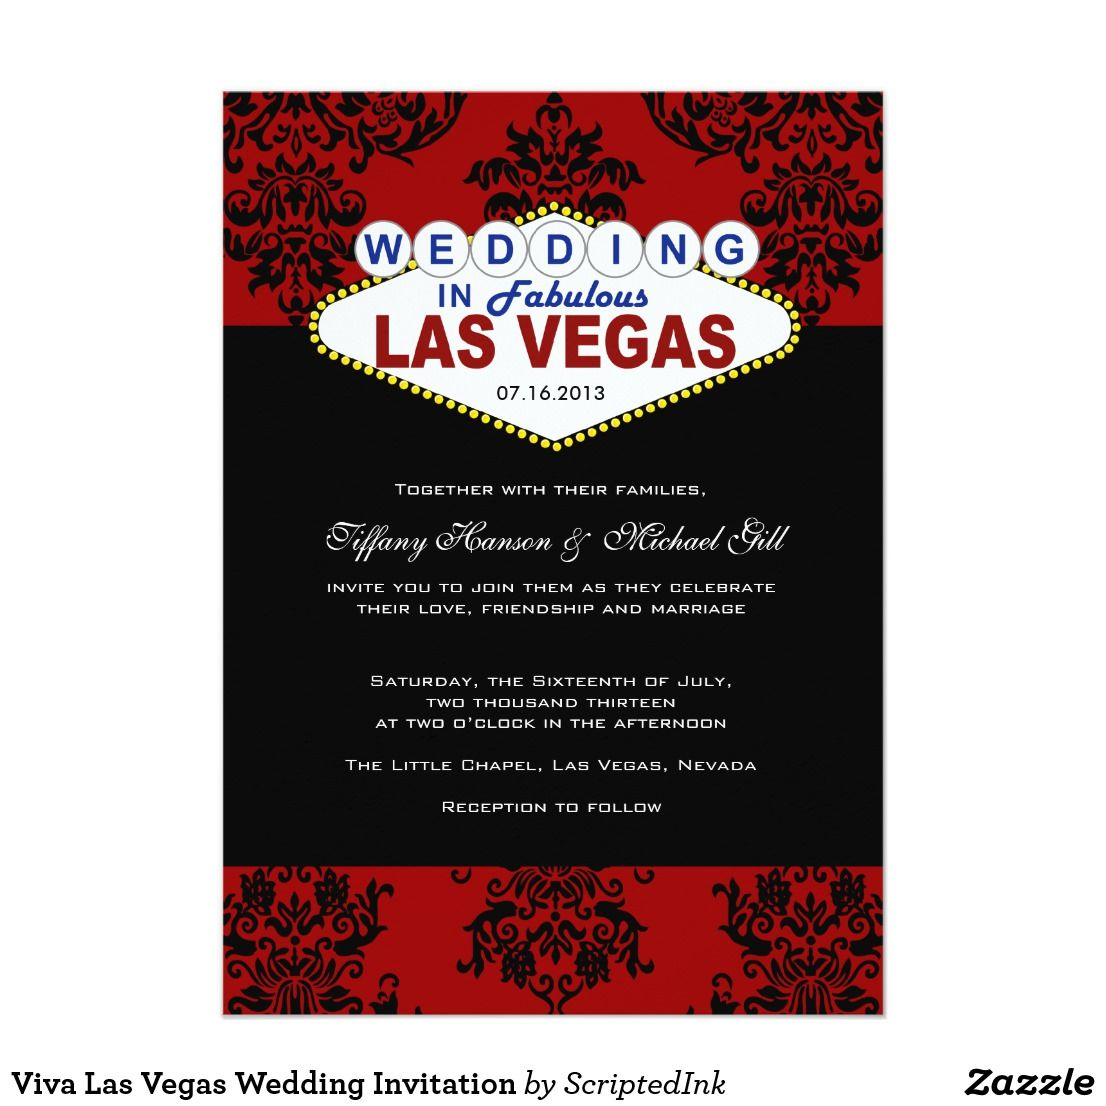 Viva Las Vegas Wedding Invitation | Casino Party | Pinterest | Vegas ...